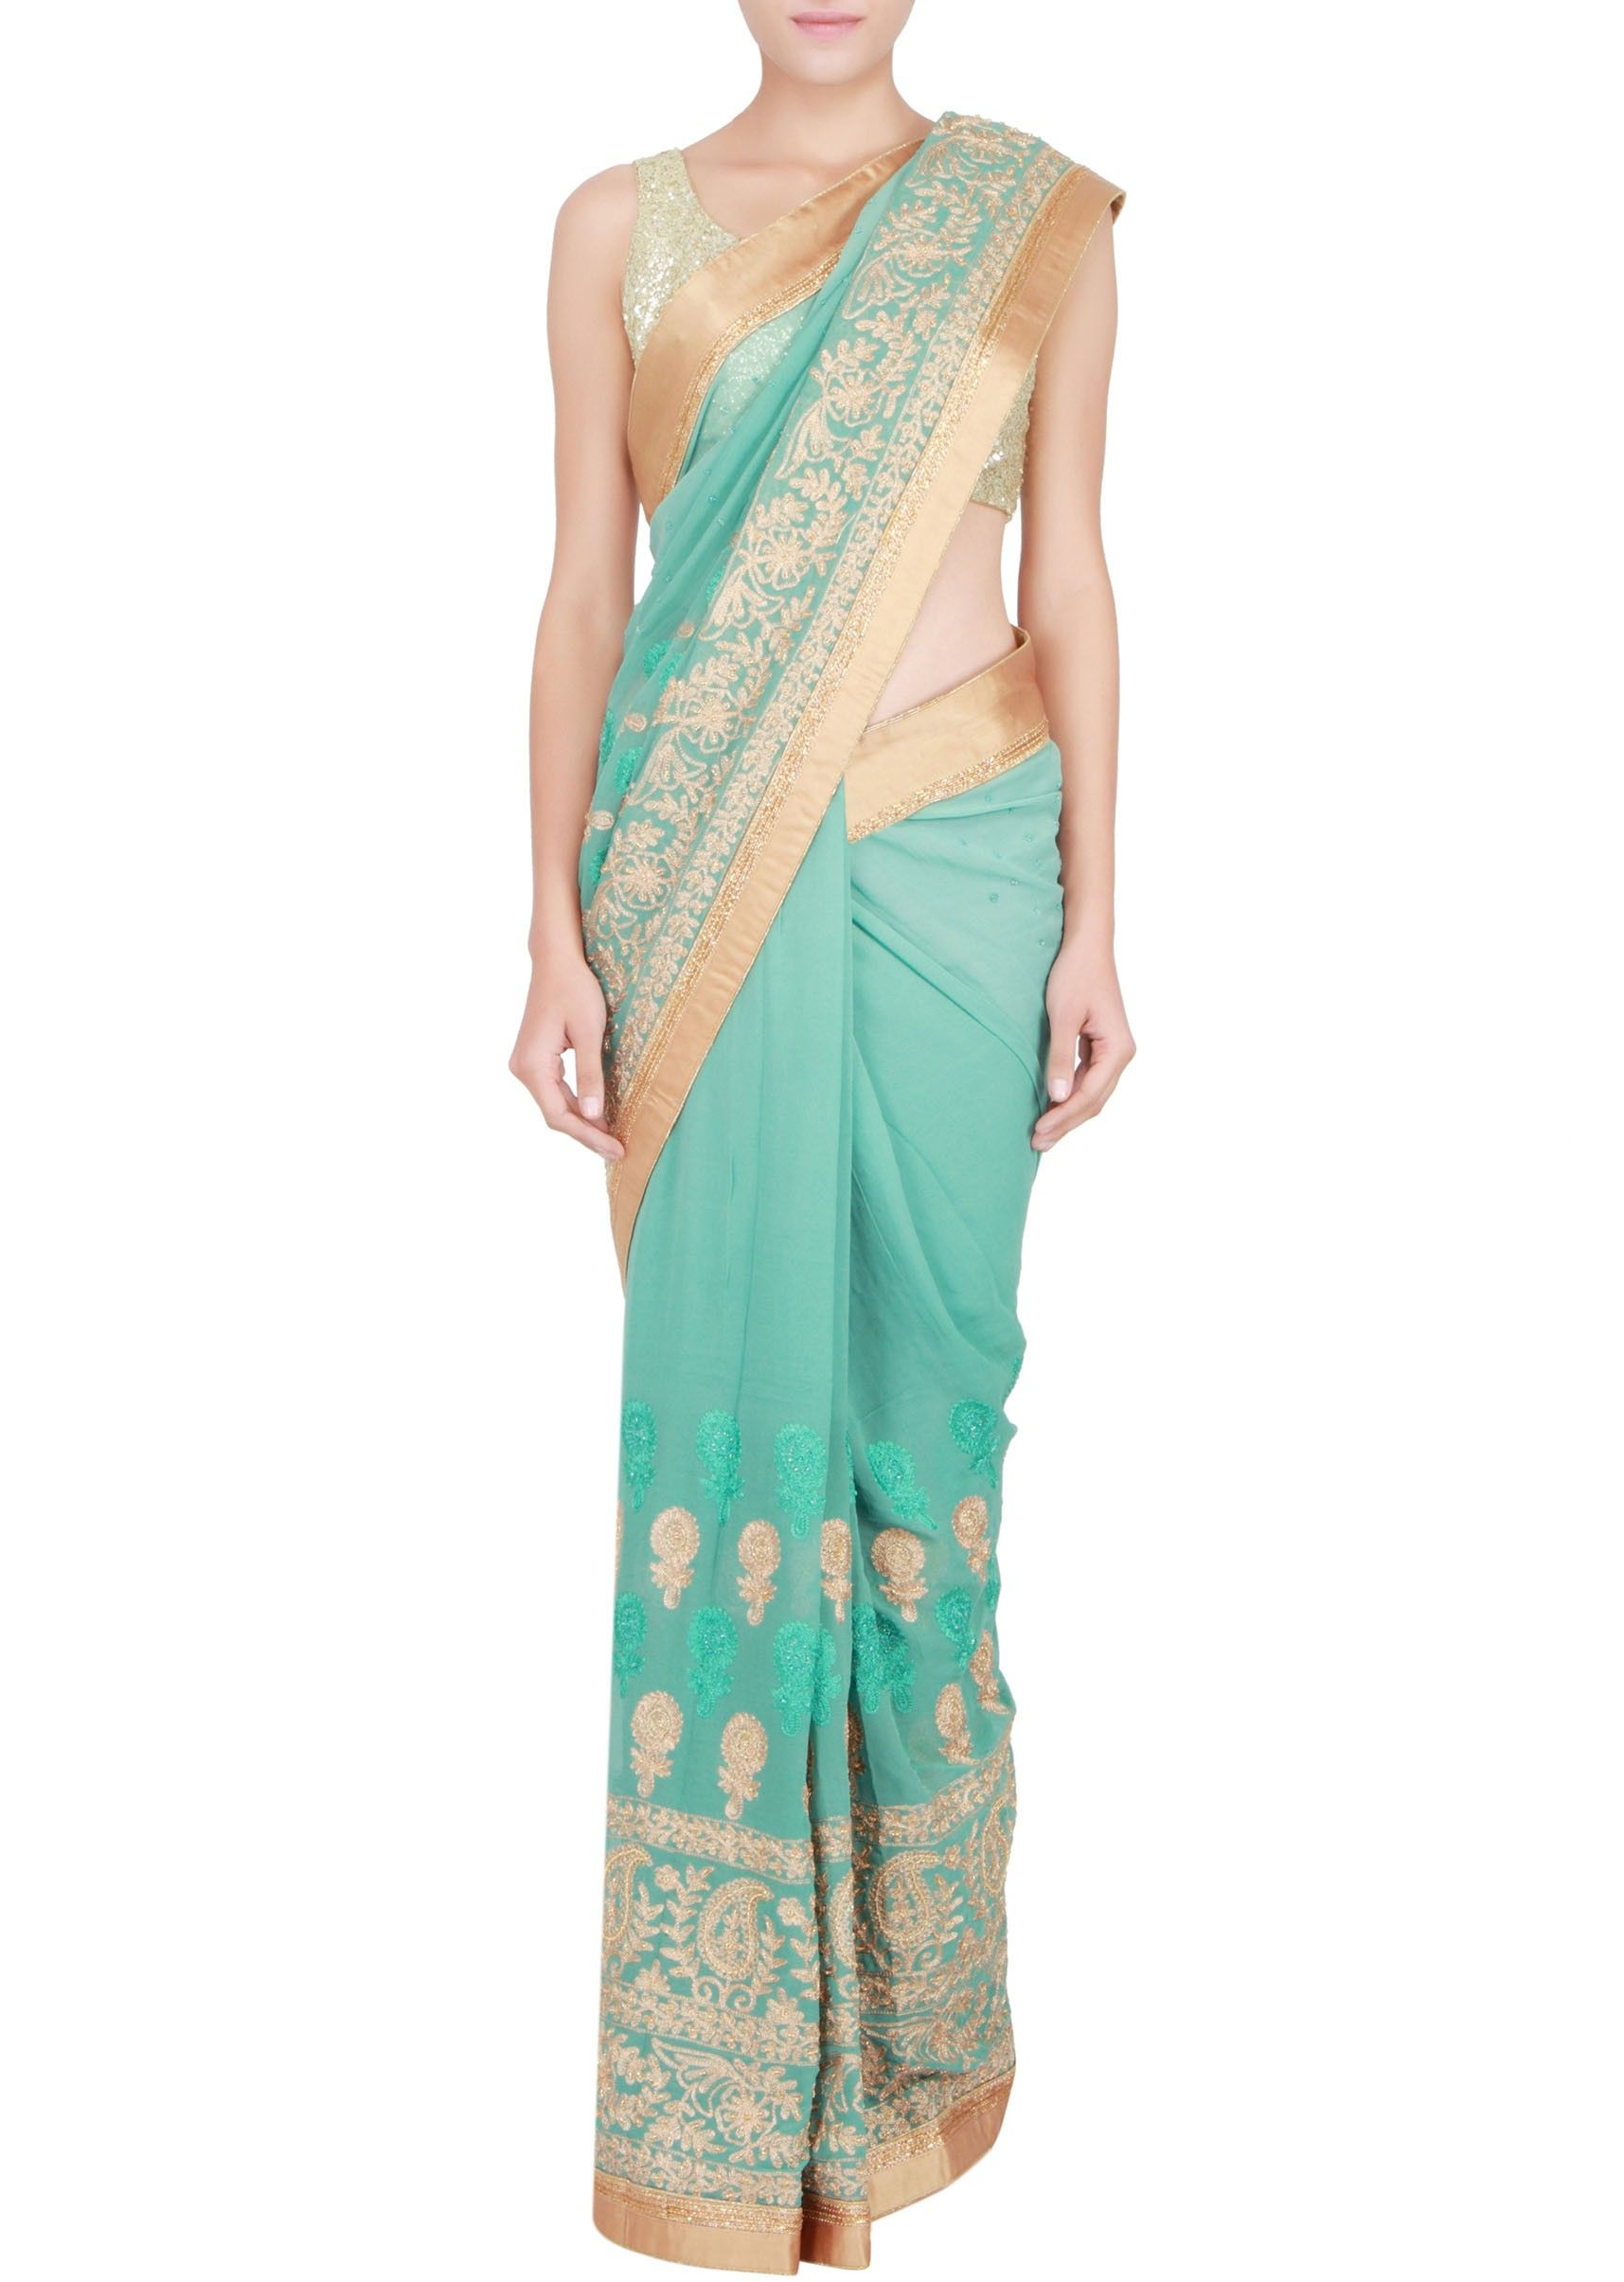 Pin by ng nam on sari | Pinterest | Party wear dresses, Indian ...